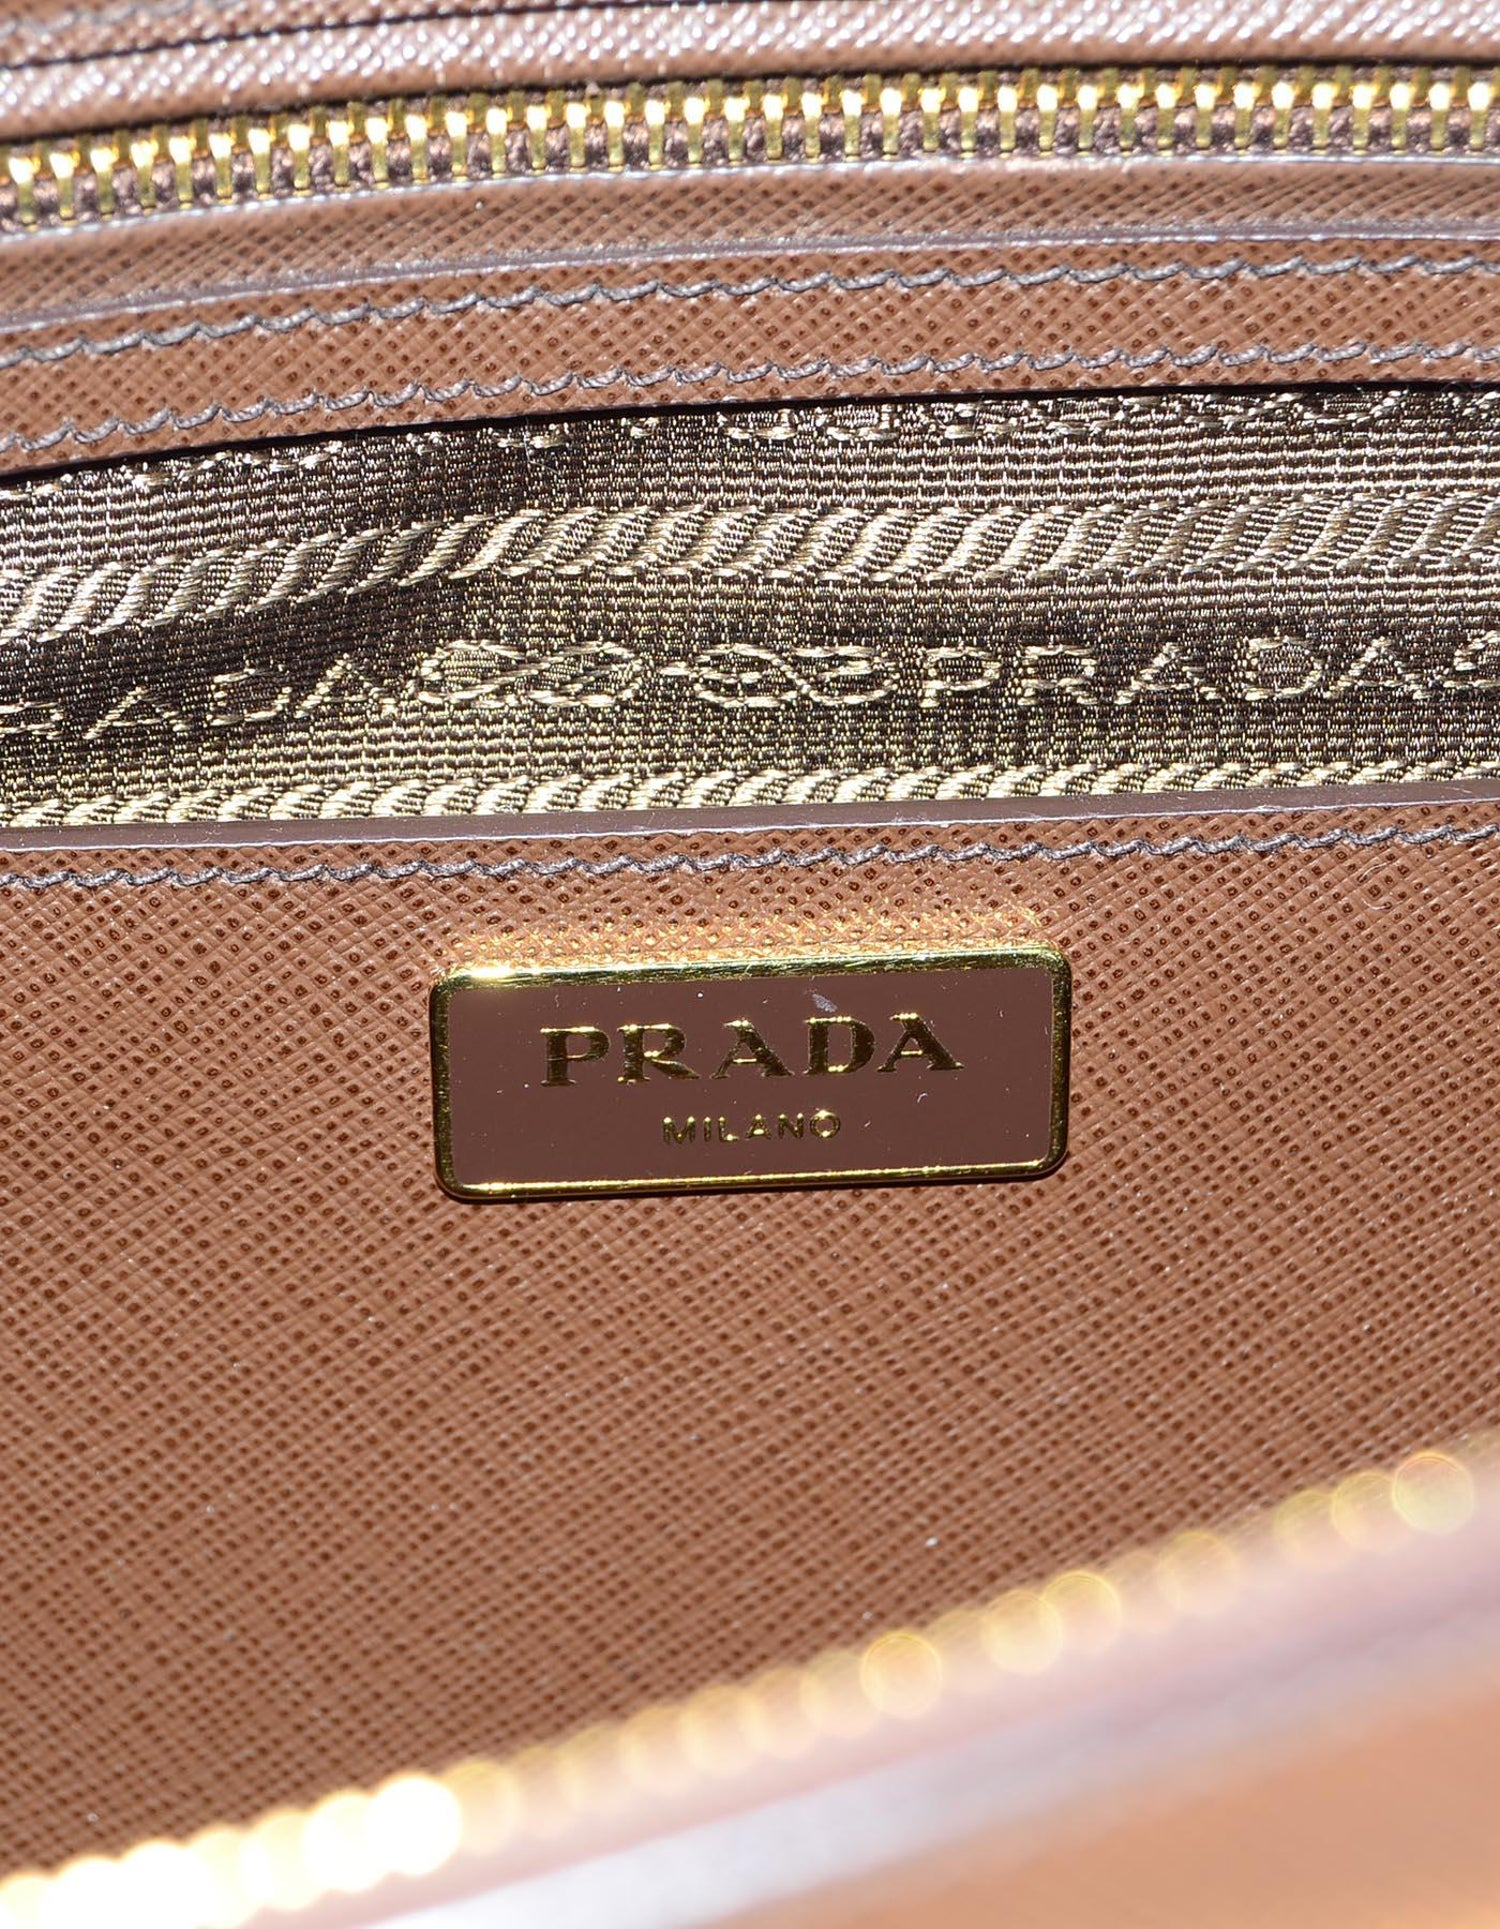 5ad21a72fa Prada Brown Saffiano Leather Medium Galleria Double Zip Tote Bag W  Strap  For Sale at 1stdibs